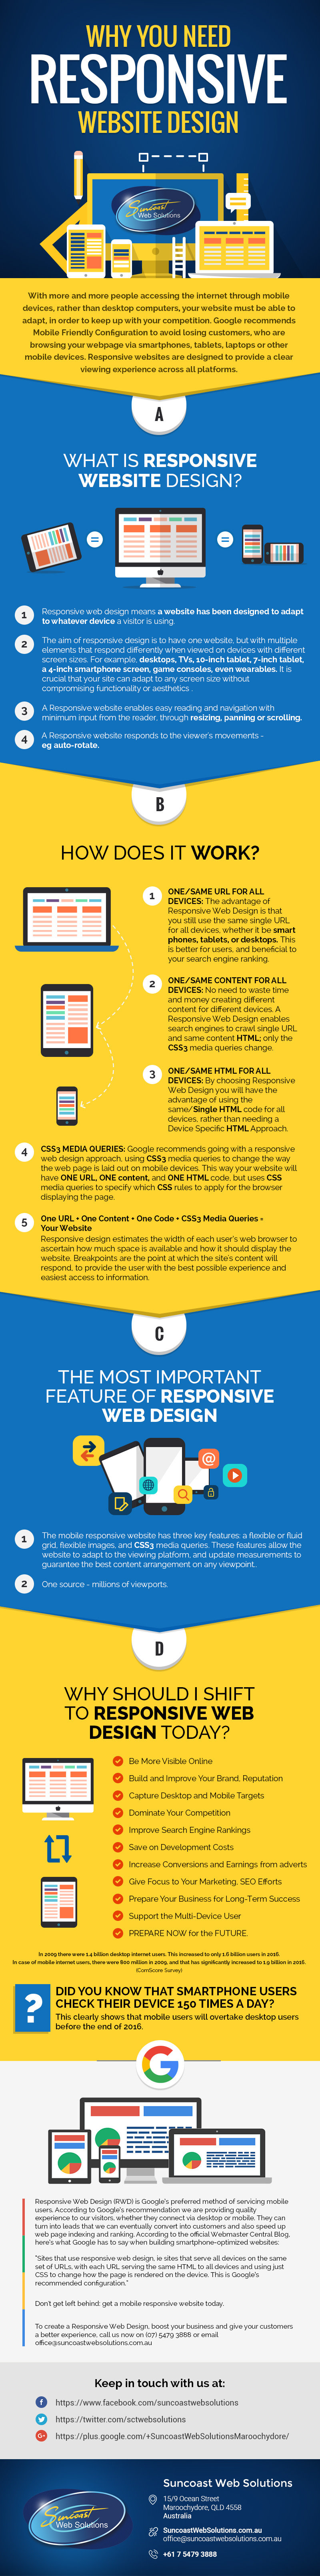 Main Reasons to Build a Responsive Website Design (RWD) - Image 1